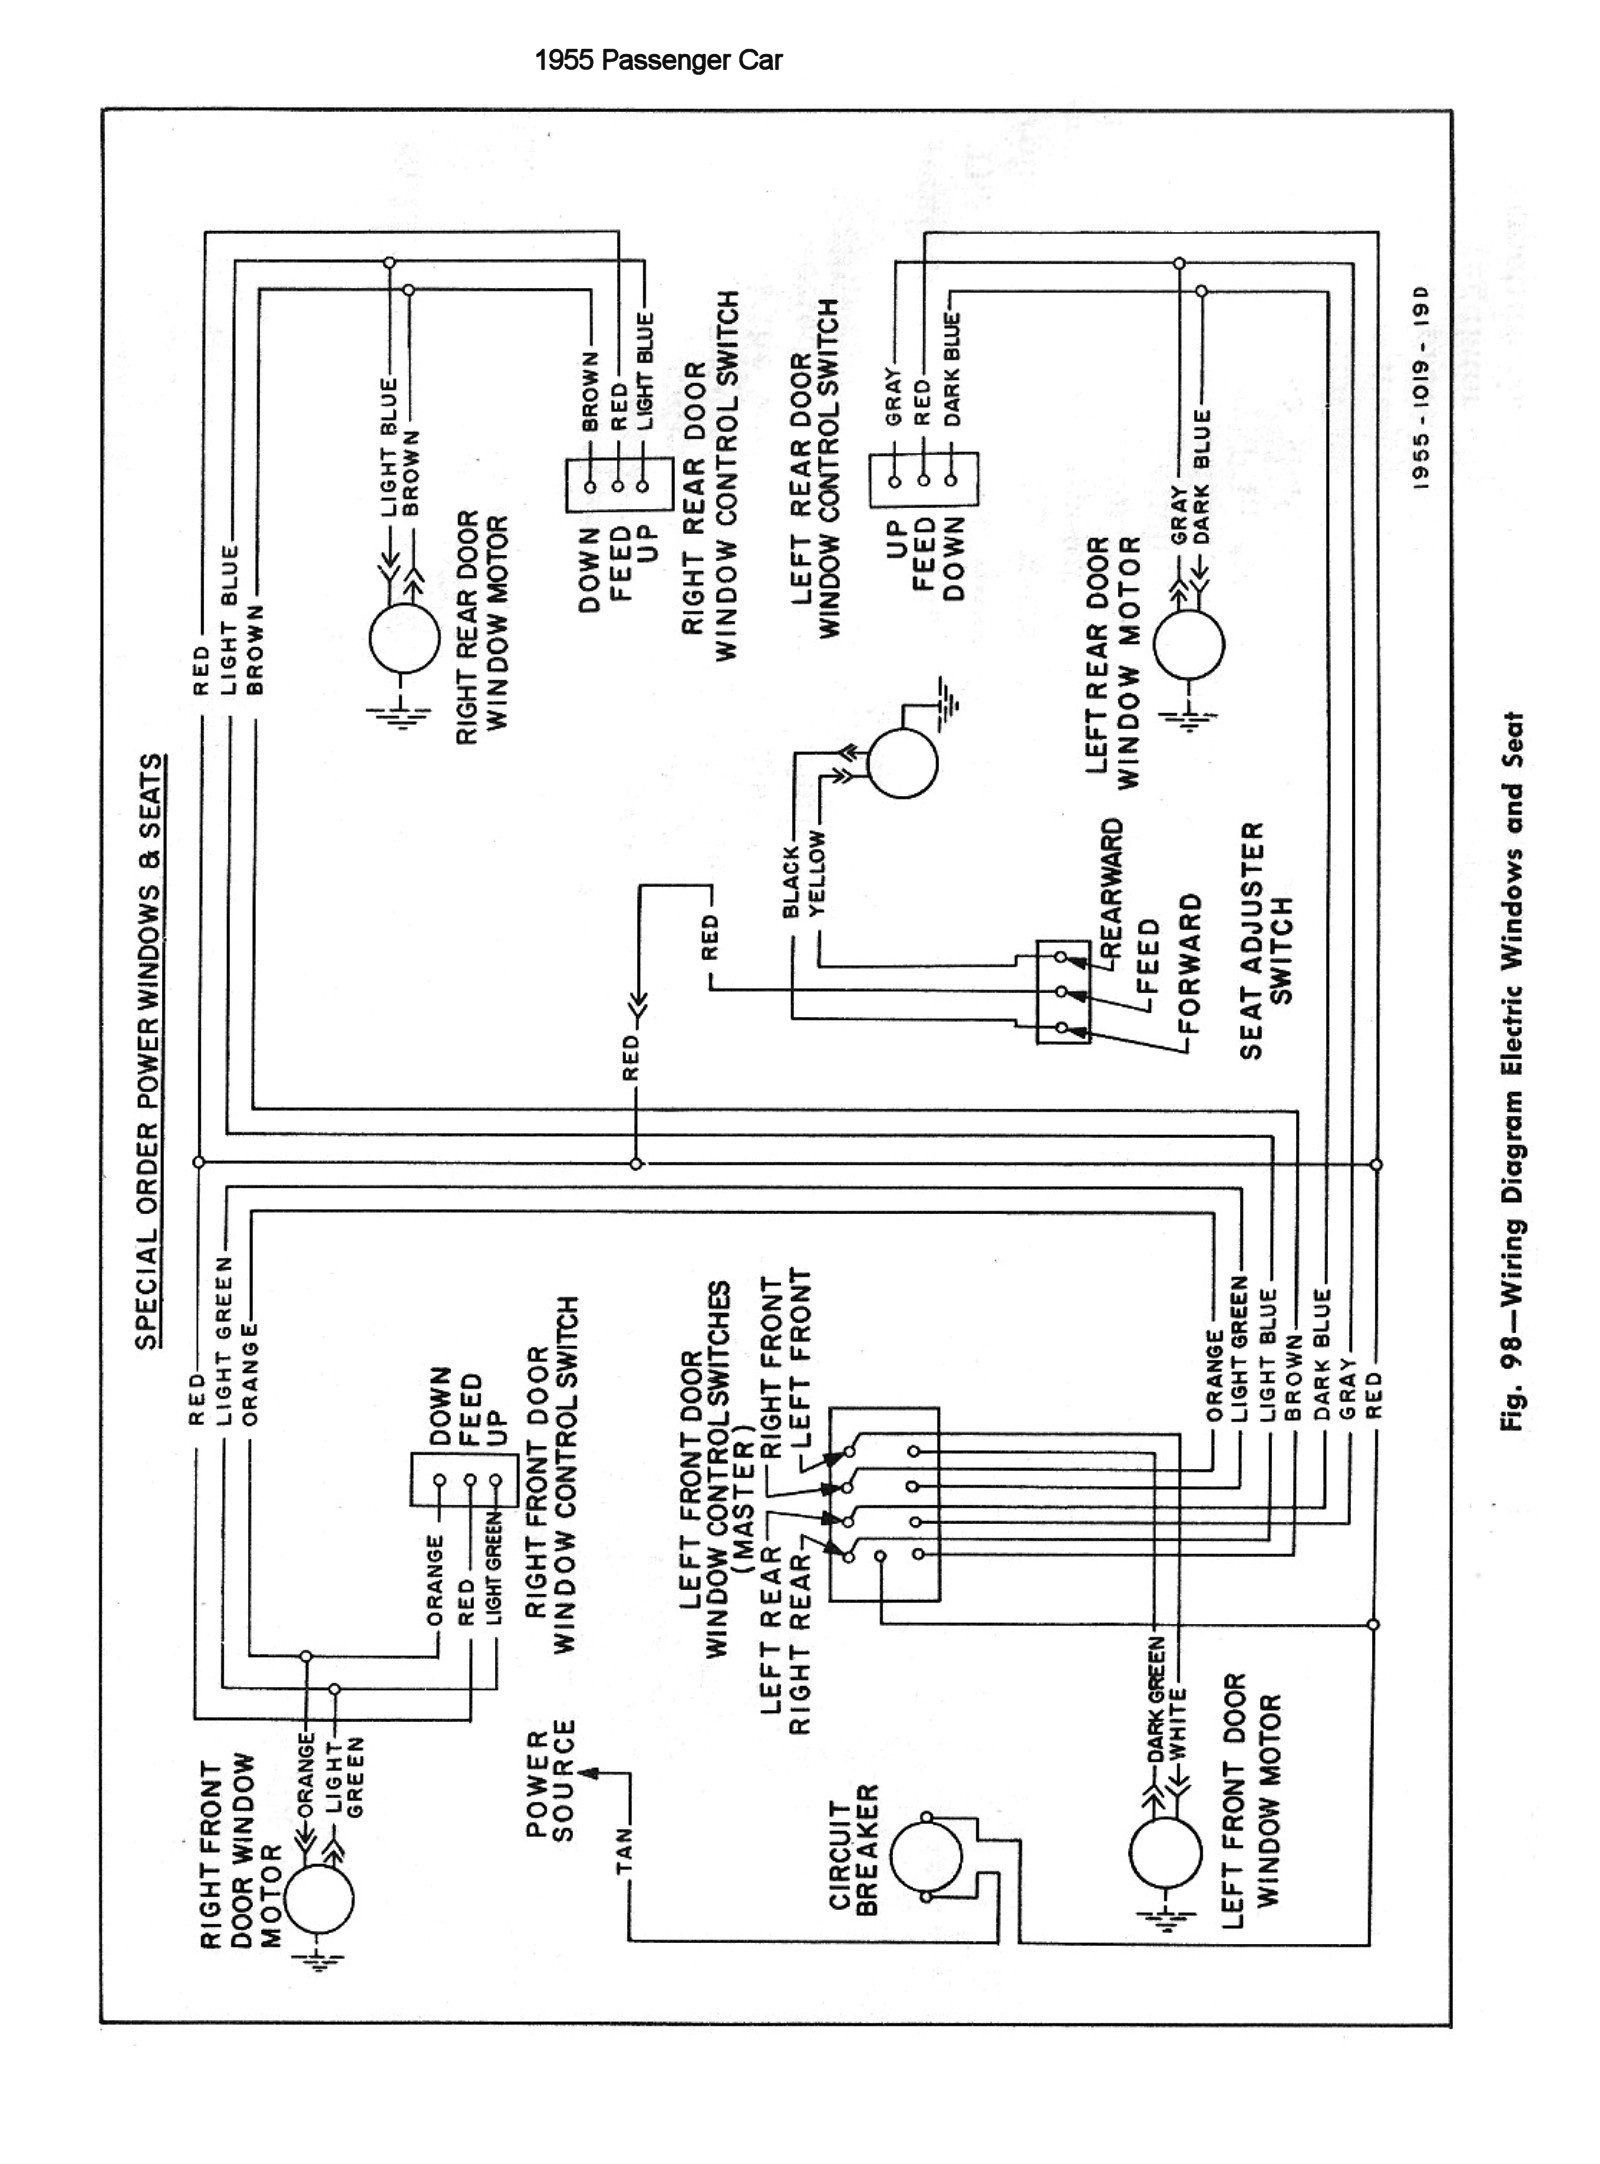 medium resolution of 1955 chevrolet wiring diagram wiring diagram for you 55 chevy pickup wiring diagram 55 chevy belair wiring diagram free picture